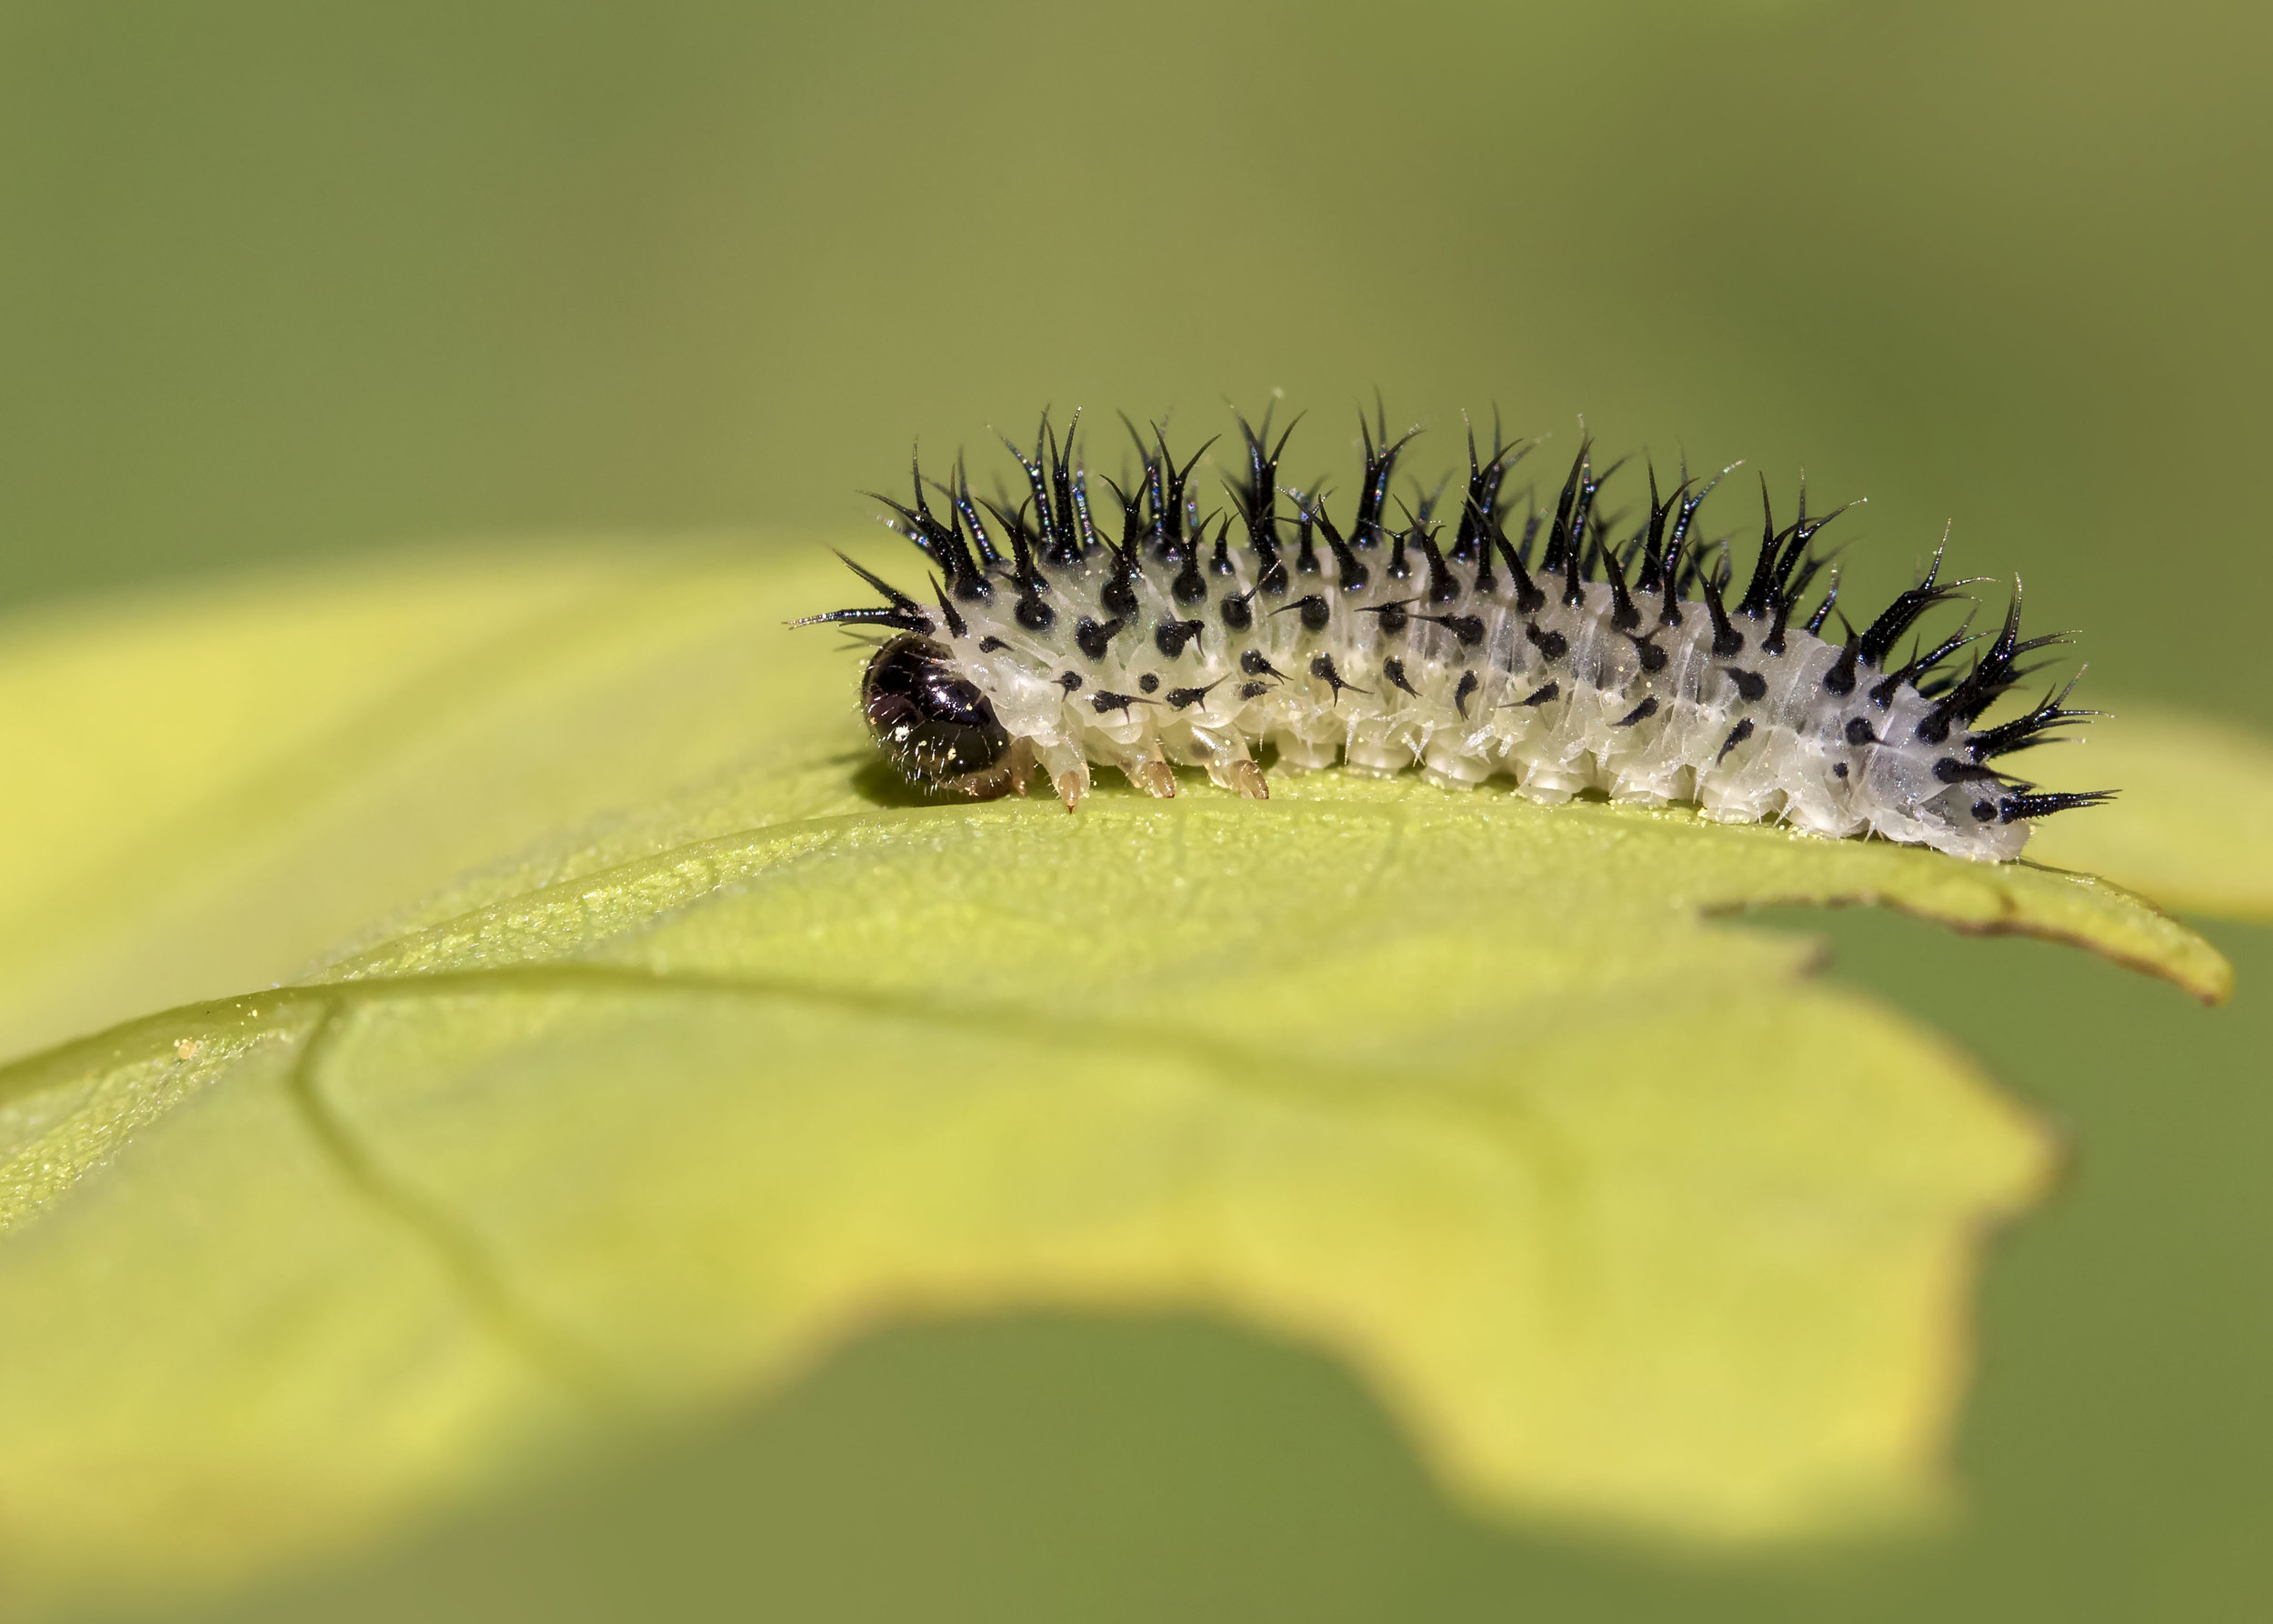 Caterpillar 12th May.jpg